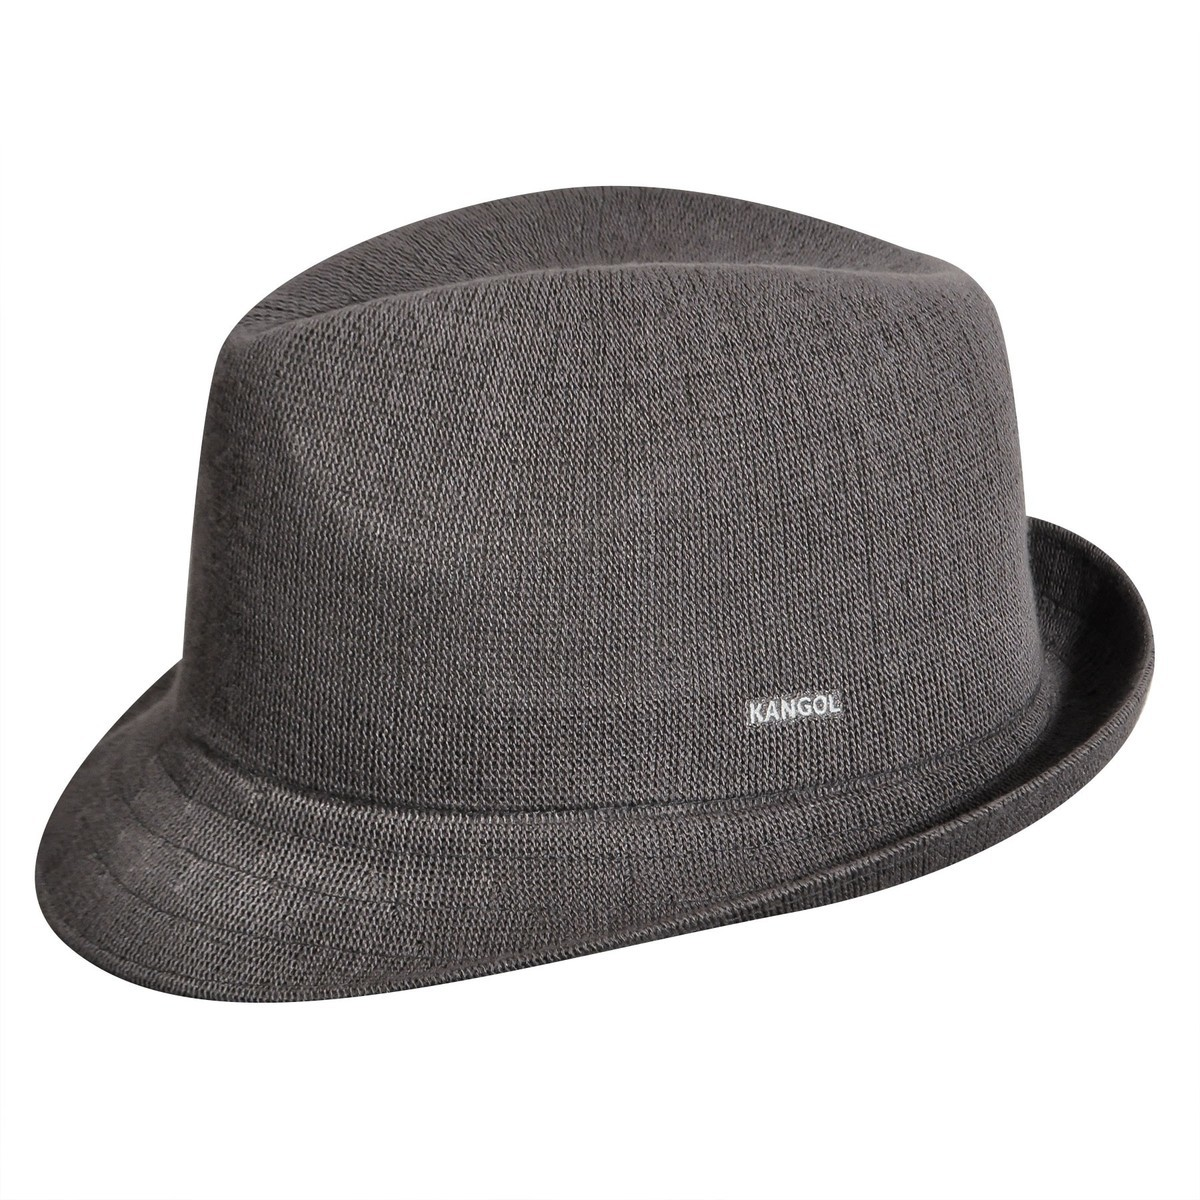 Kangol カンゴール Bamboo Arnold Trilby Charcoal Trilby 帽子 Charcoal